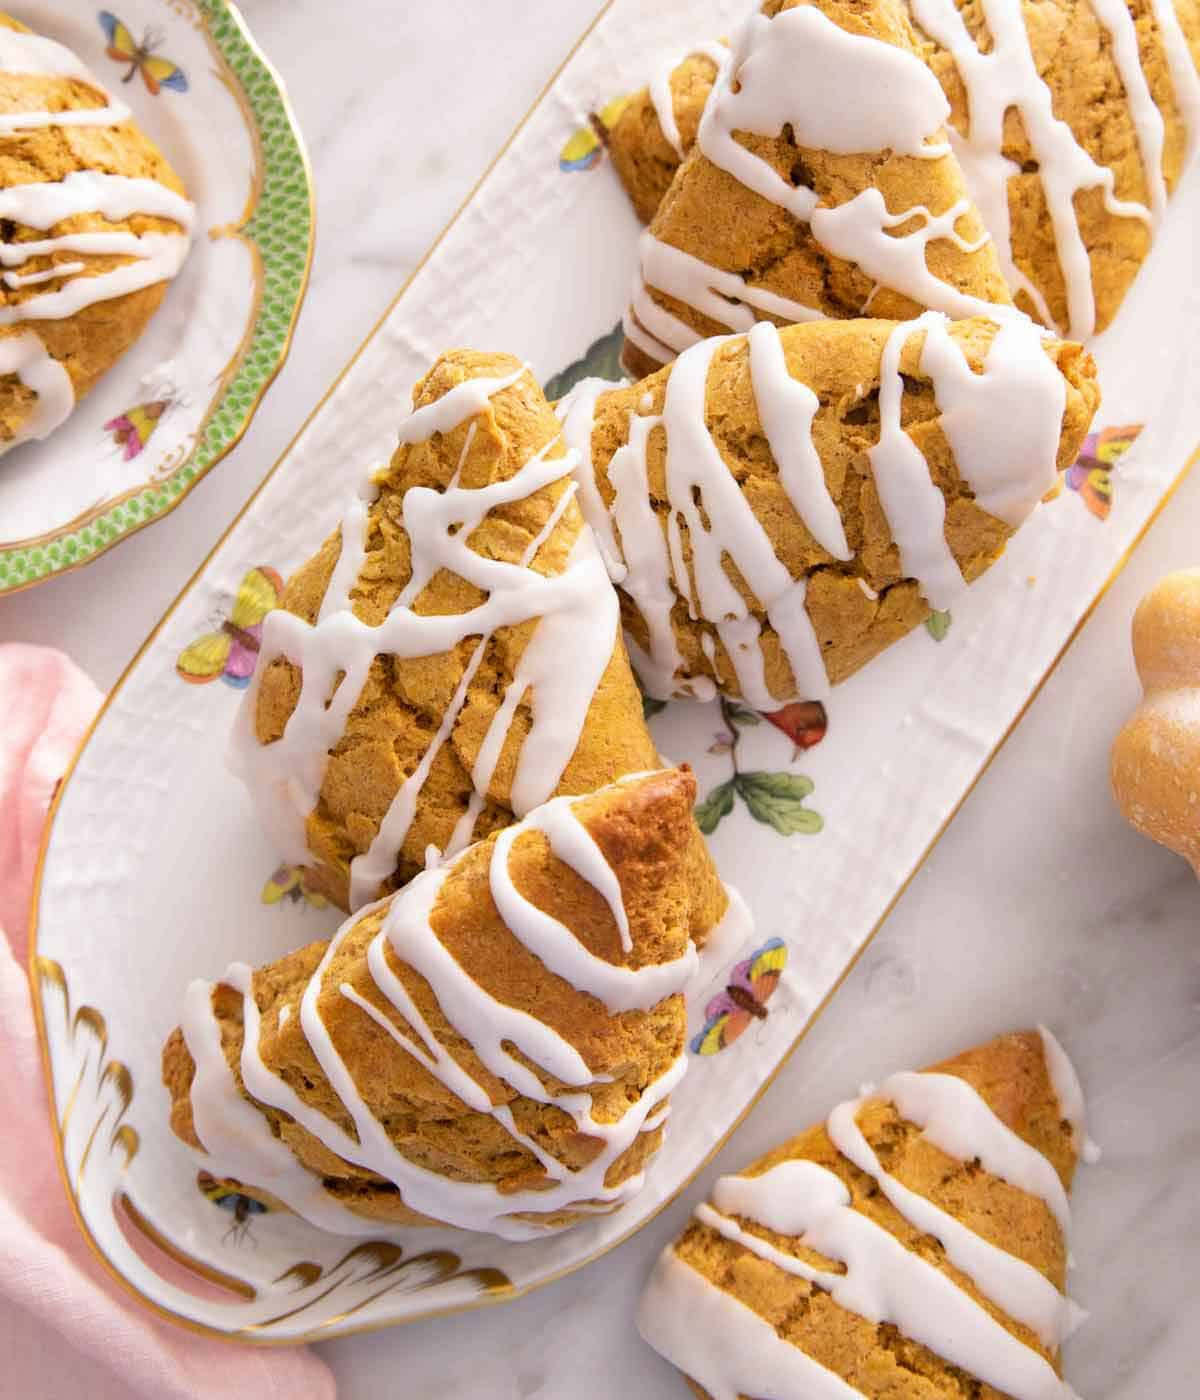 Overhead view of a platter of pumpkin scones with glaze drizzled on top.